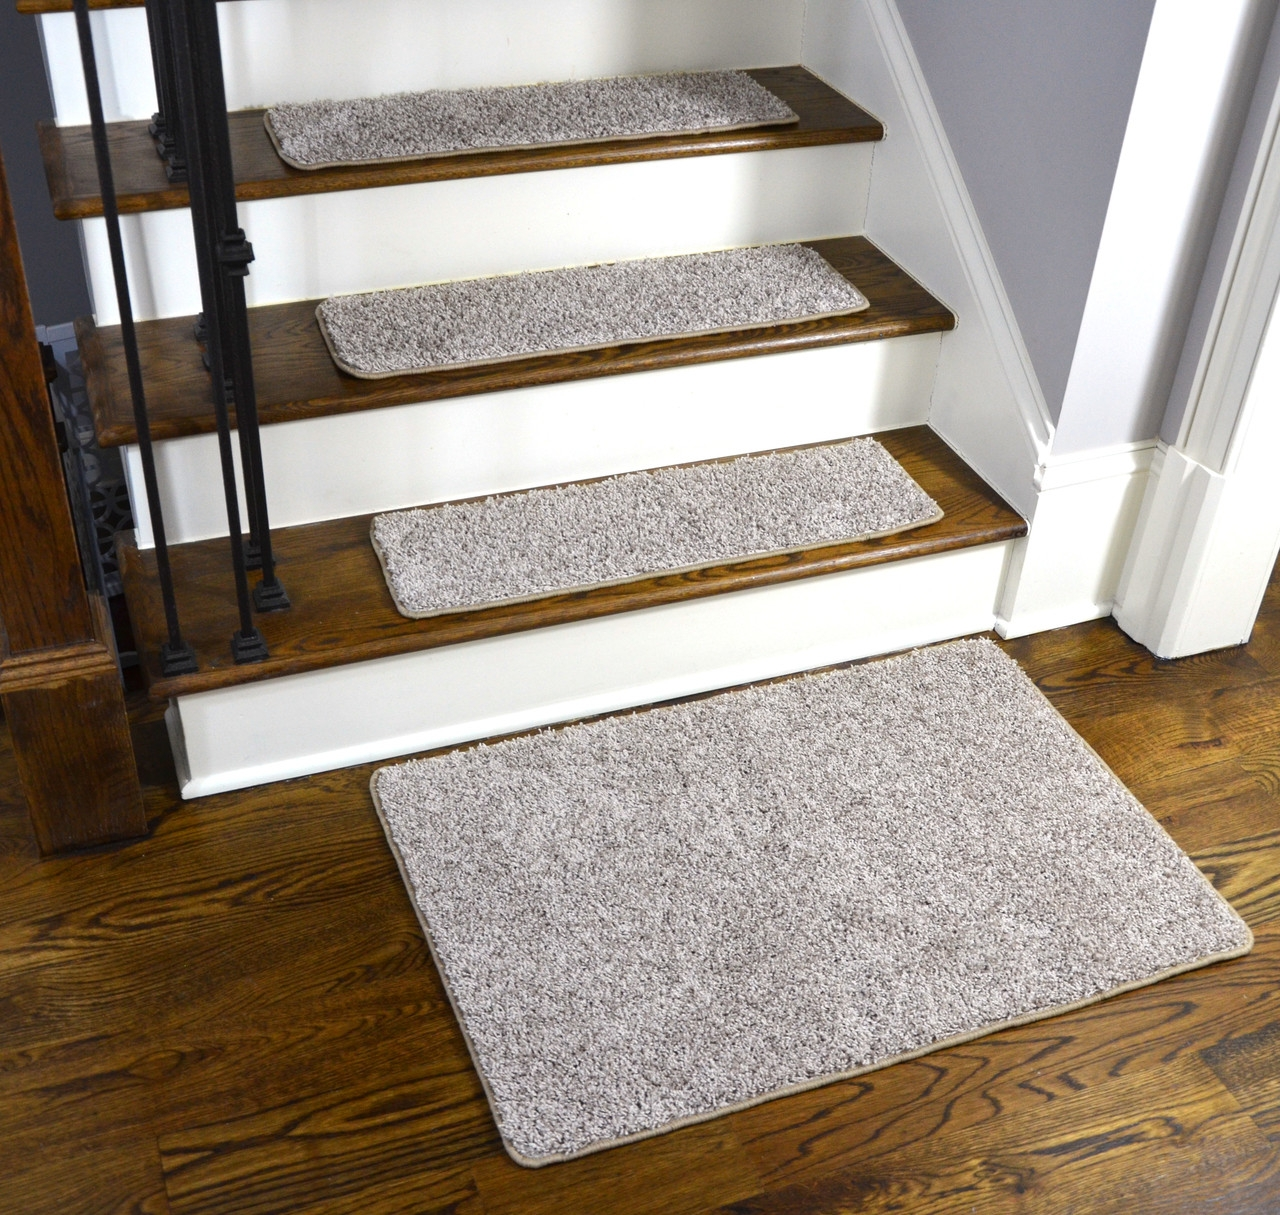 Dean Washable Non Slip Carpet Stair Treads Macadamia Beige Set   Washable Carpet Stair Treads   Removable Washable   Machine Washable   Rubber Backing   Slip Resistant   Self Adhesive